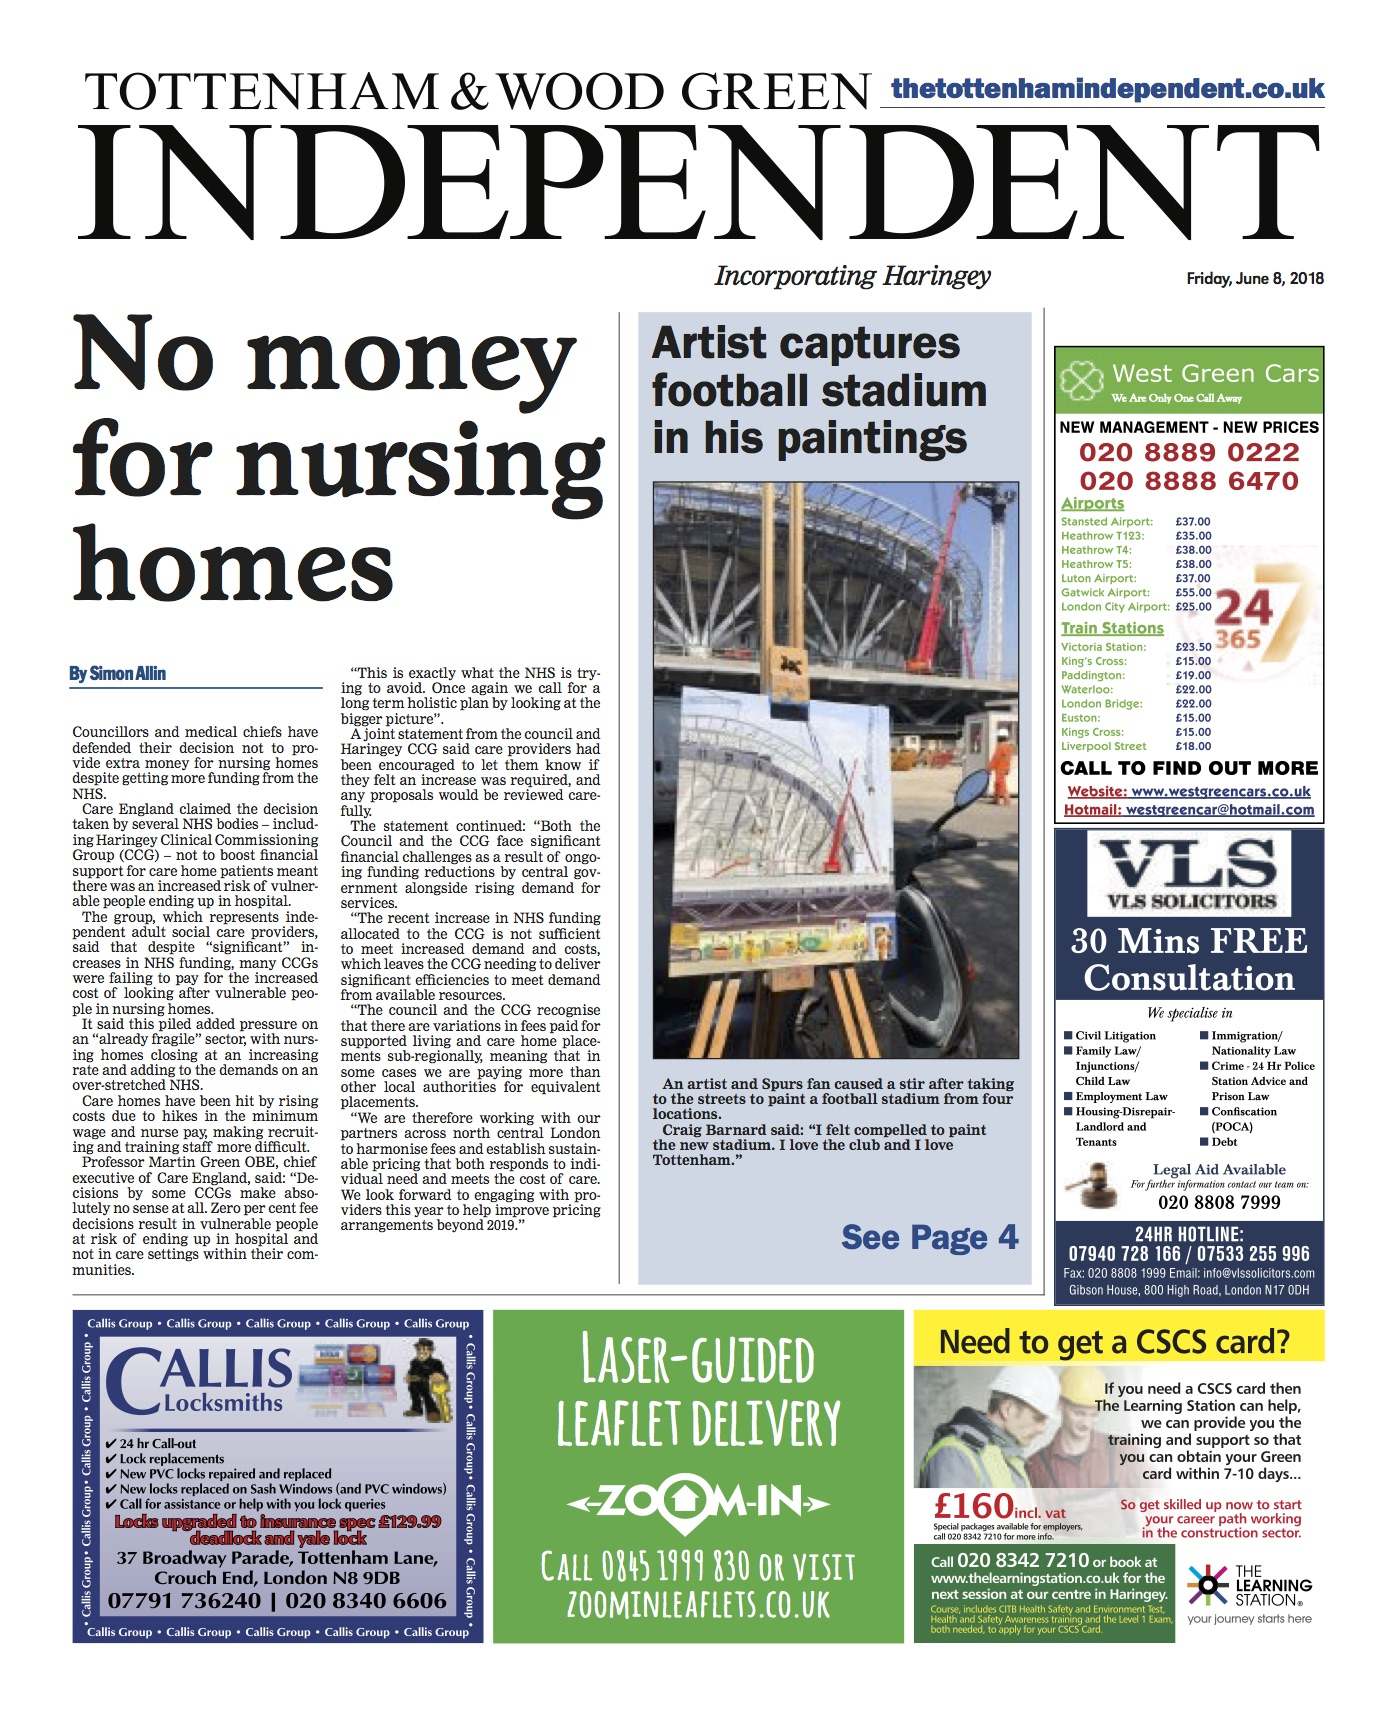 Tottenham and Wood Green Independent 8 June 2018.jpg